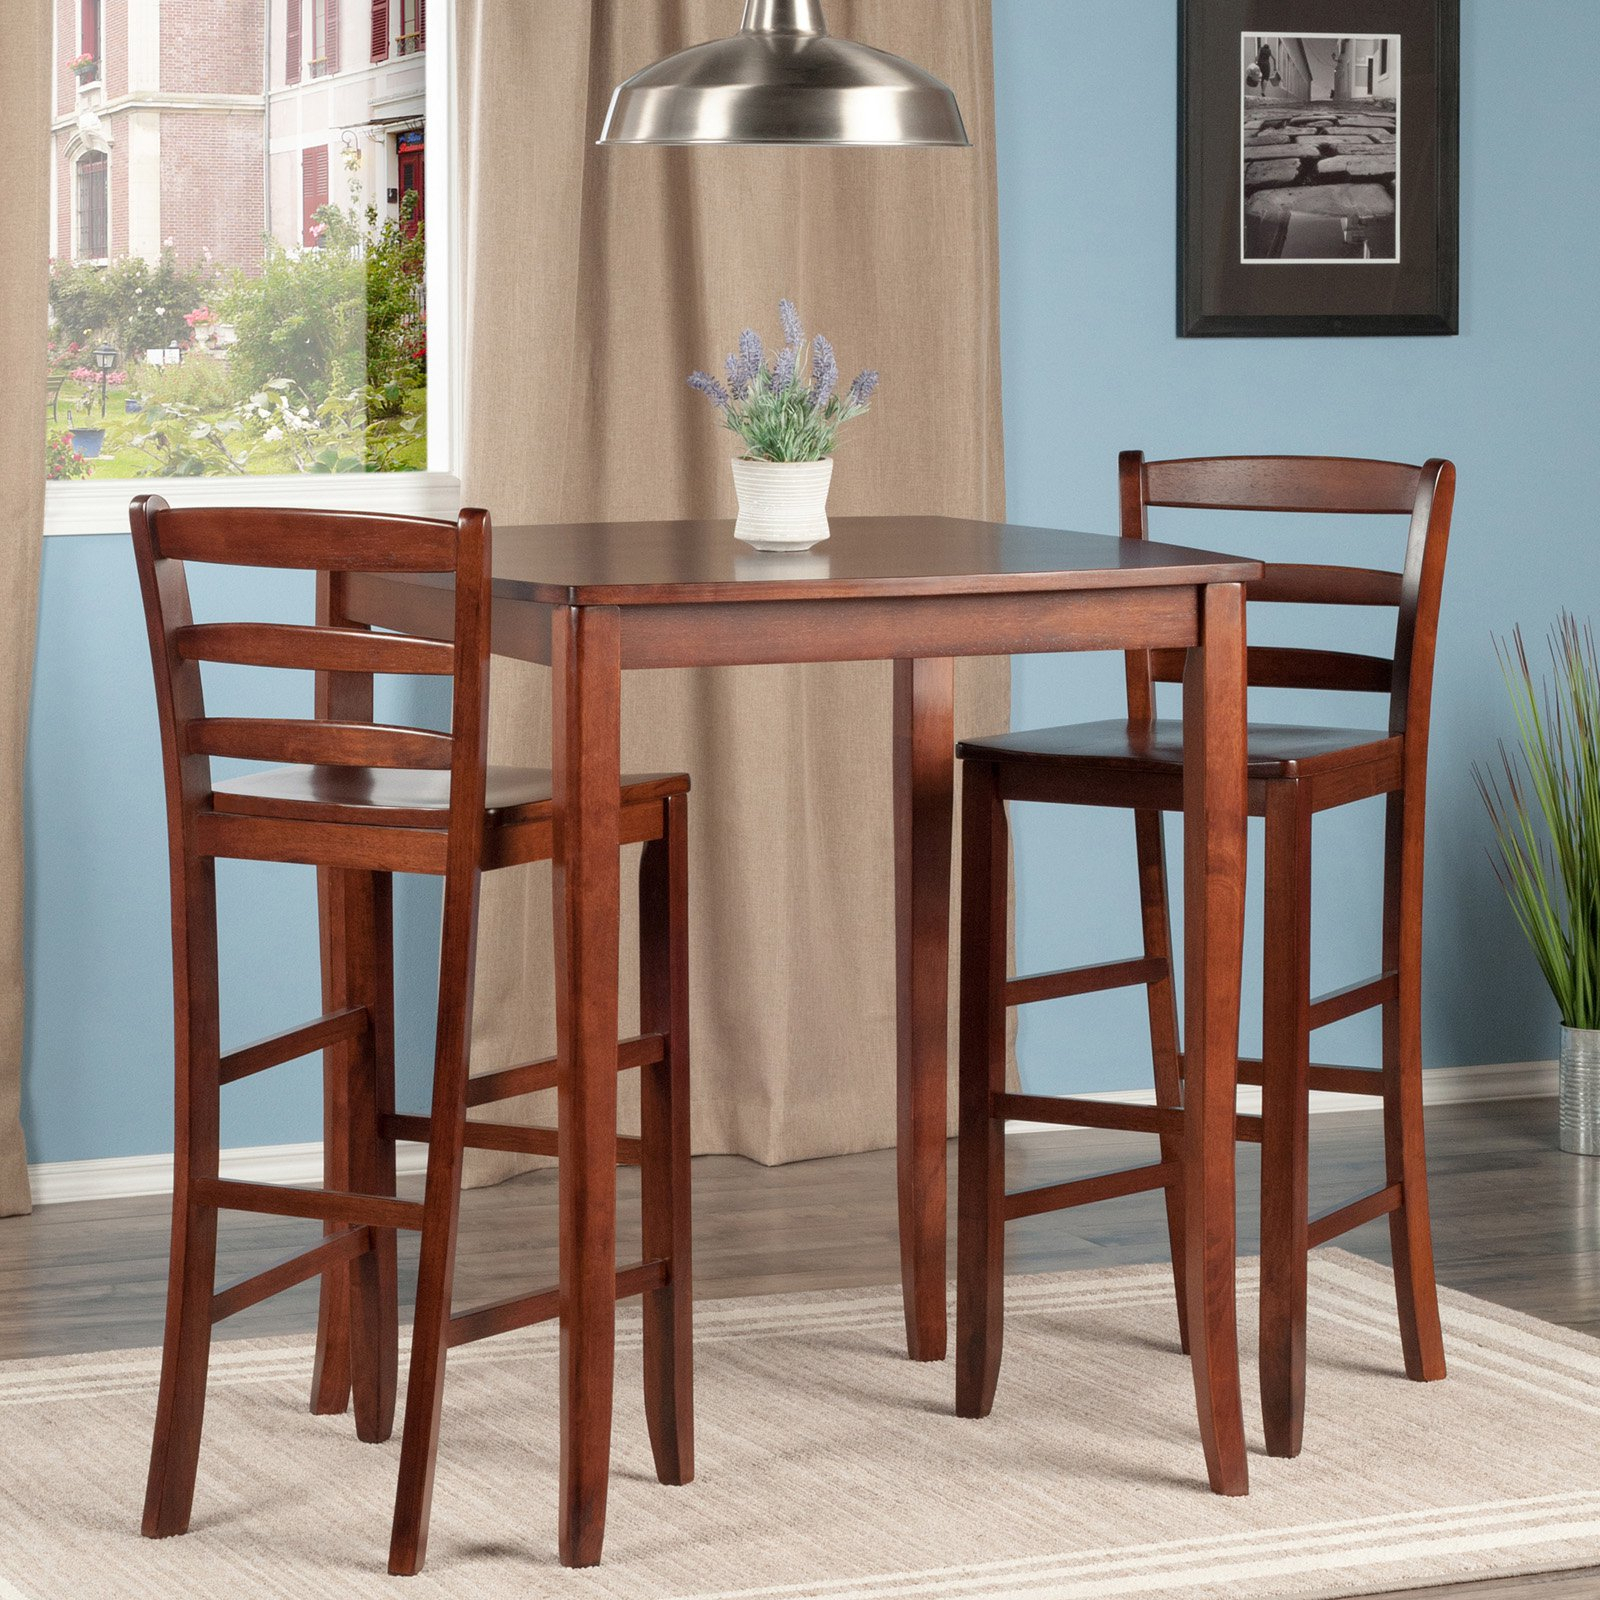 Inspiration about Winsome Inglewood 3 Piece Pub Table Set With Ladder Back Stools In Pertaining To 2017 Winsome 3 Piece Counter Height Dining Sets (#5 of 20)